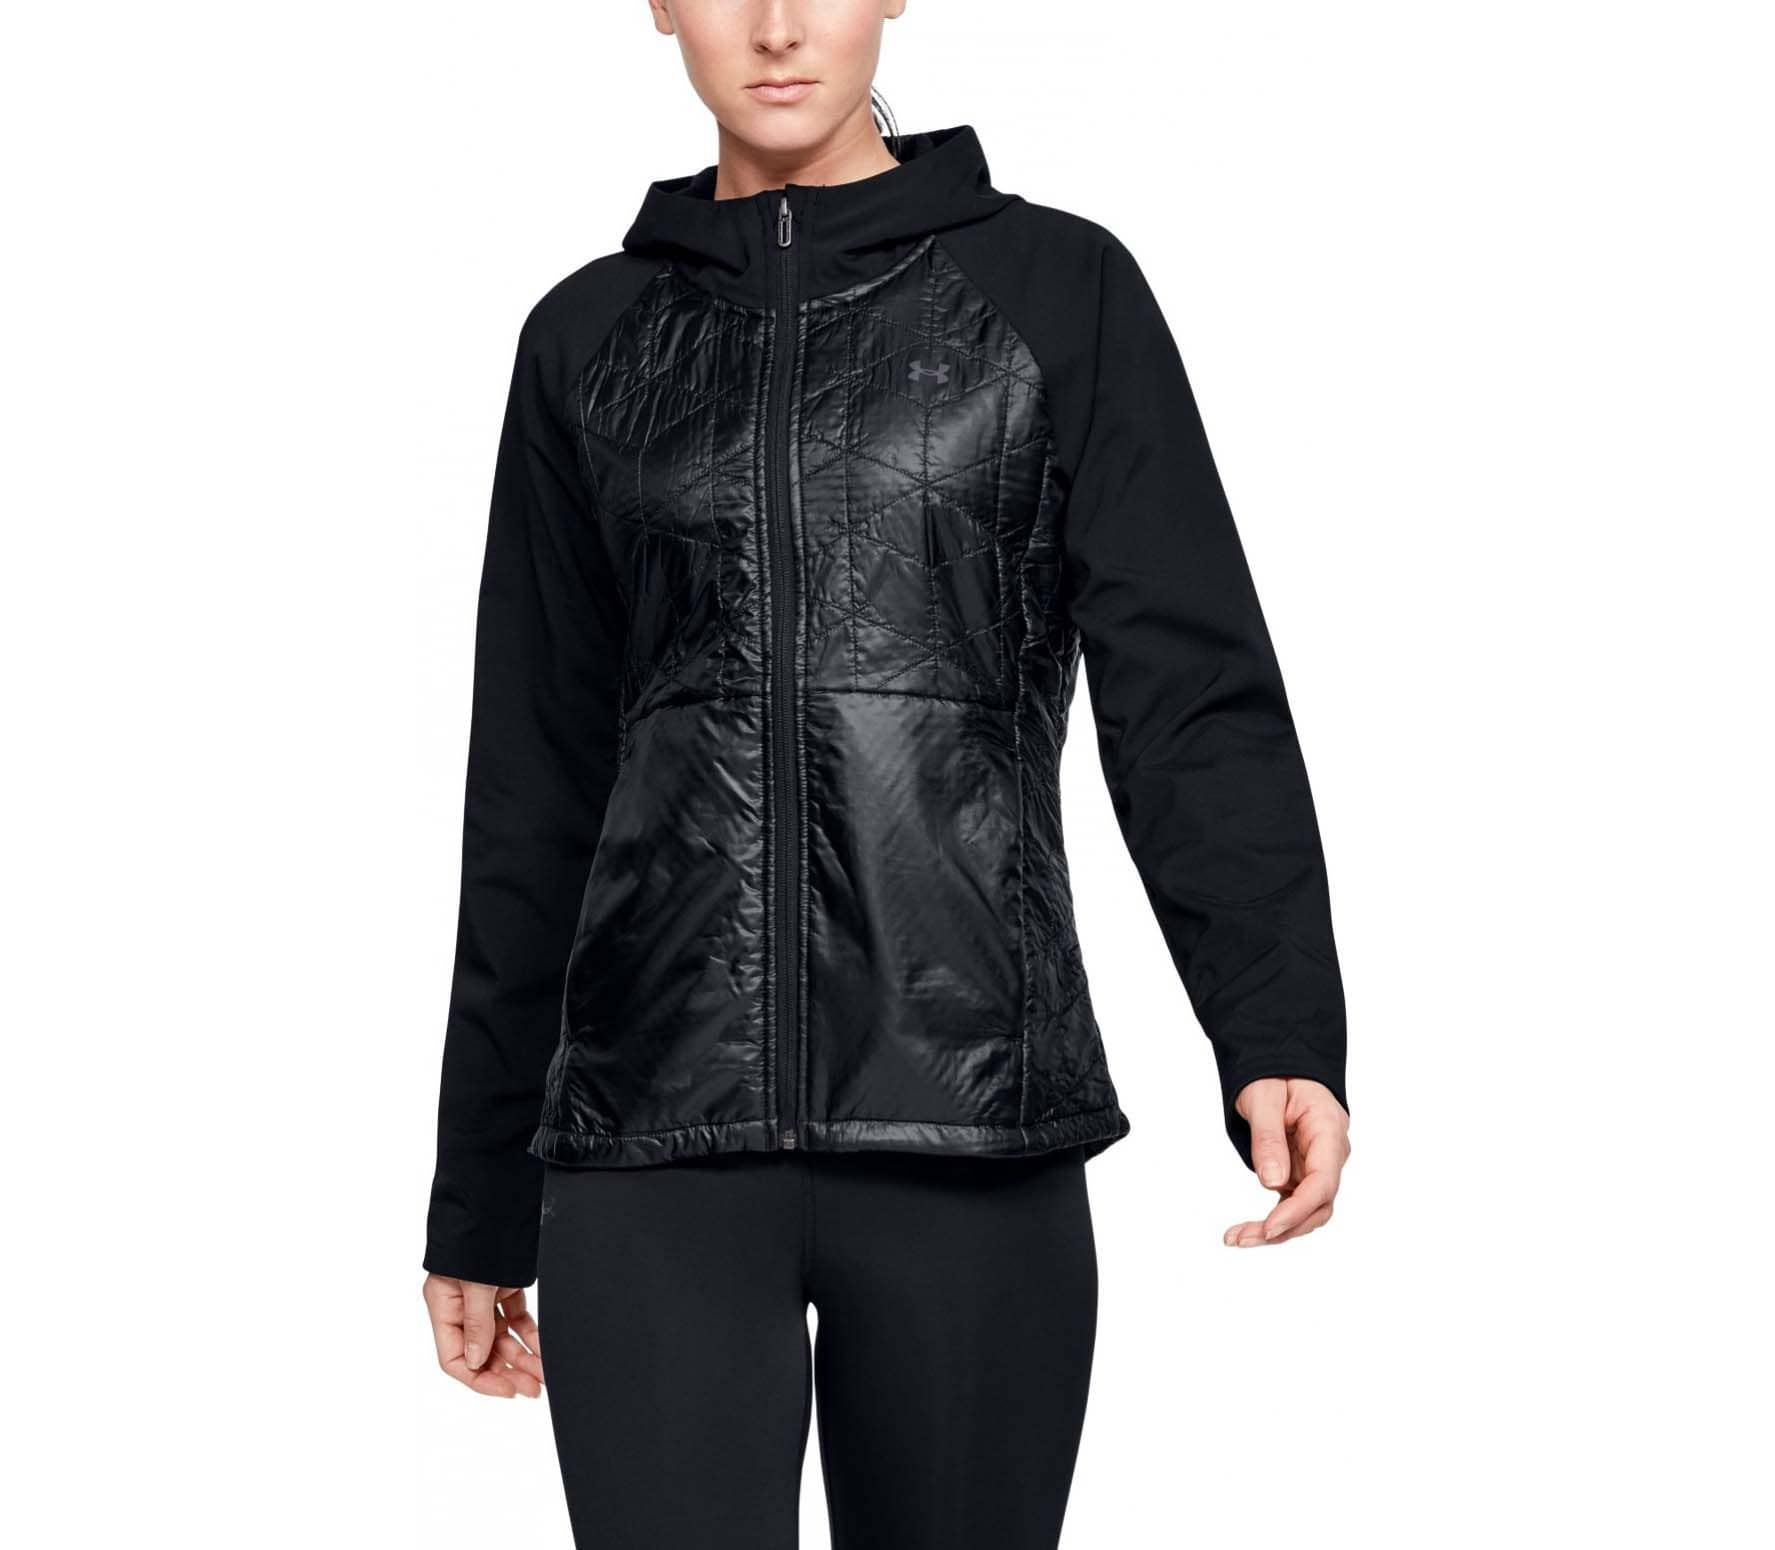 Under Armour® Winterjacke »Coldgear Reactor Performance Hybrid« online kaufen | OTTO